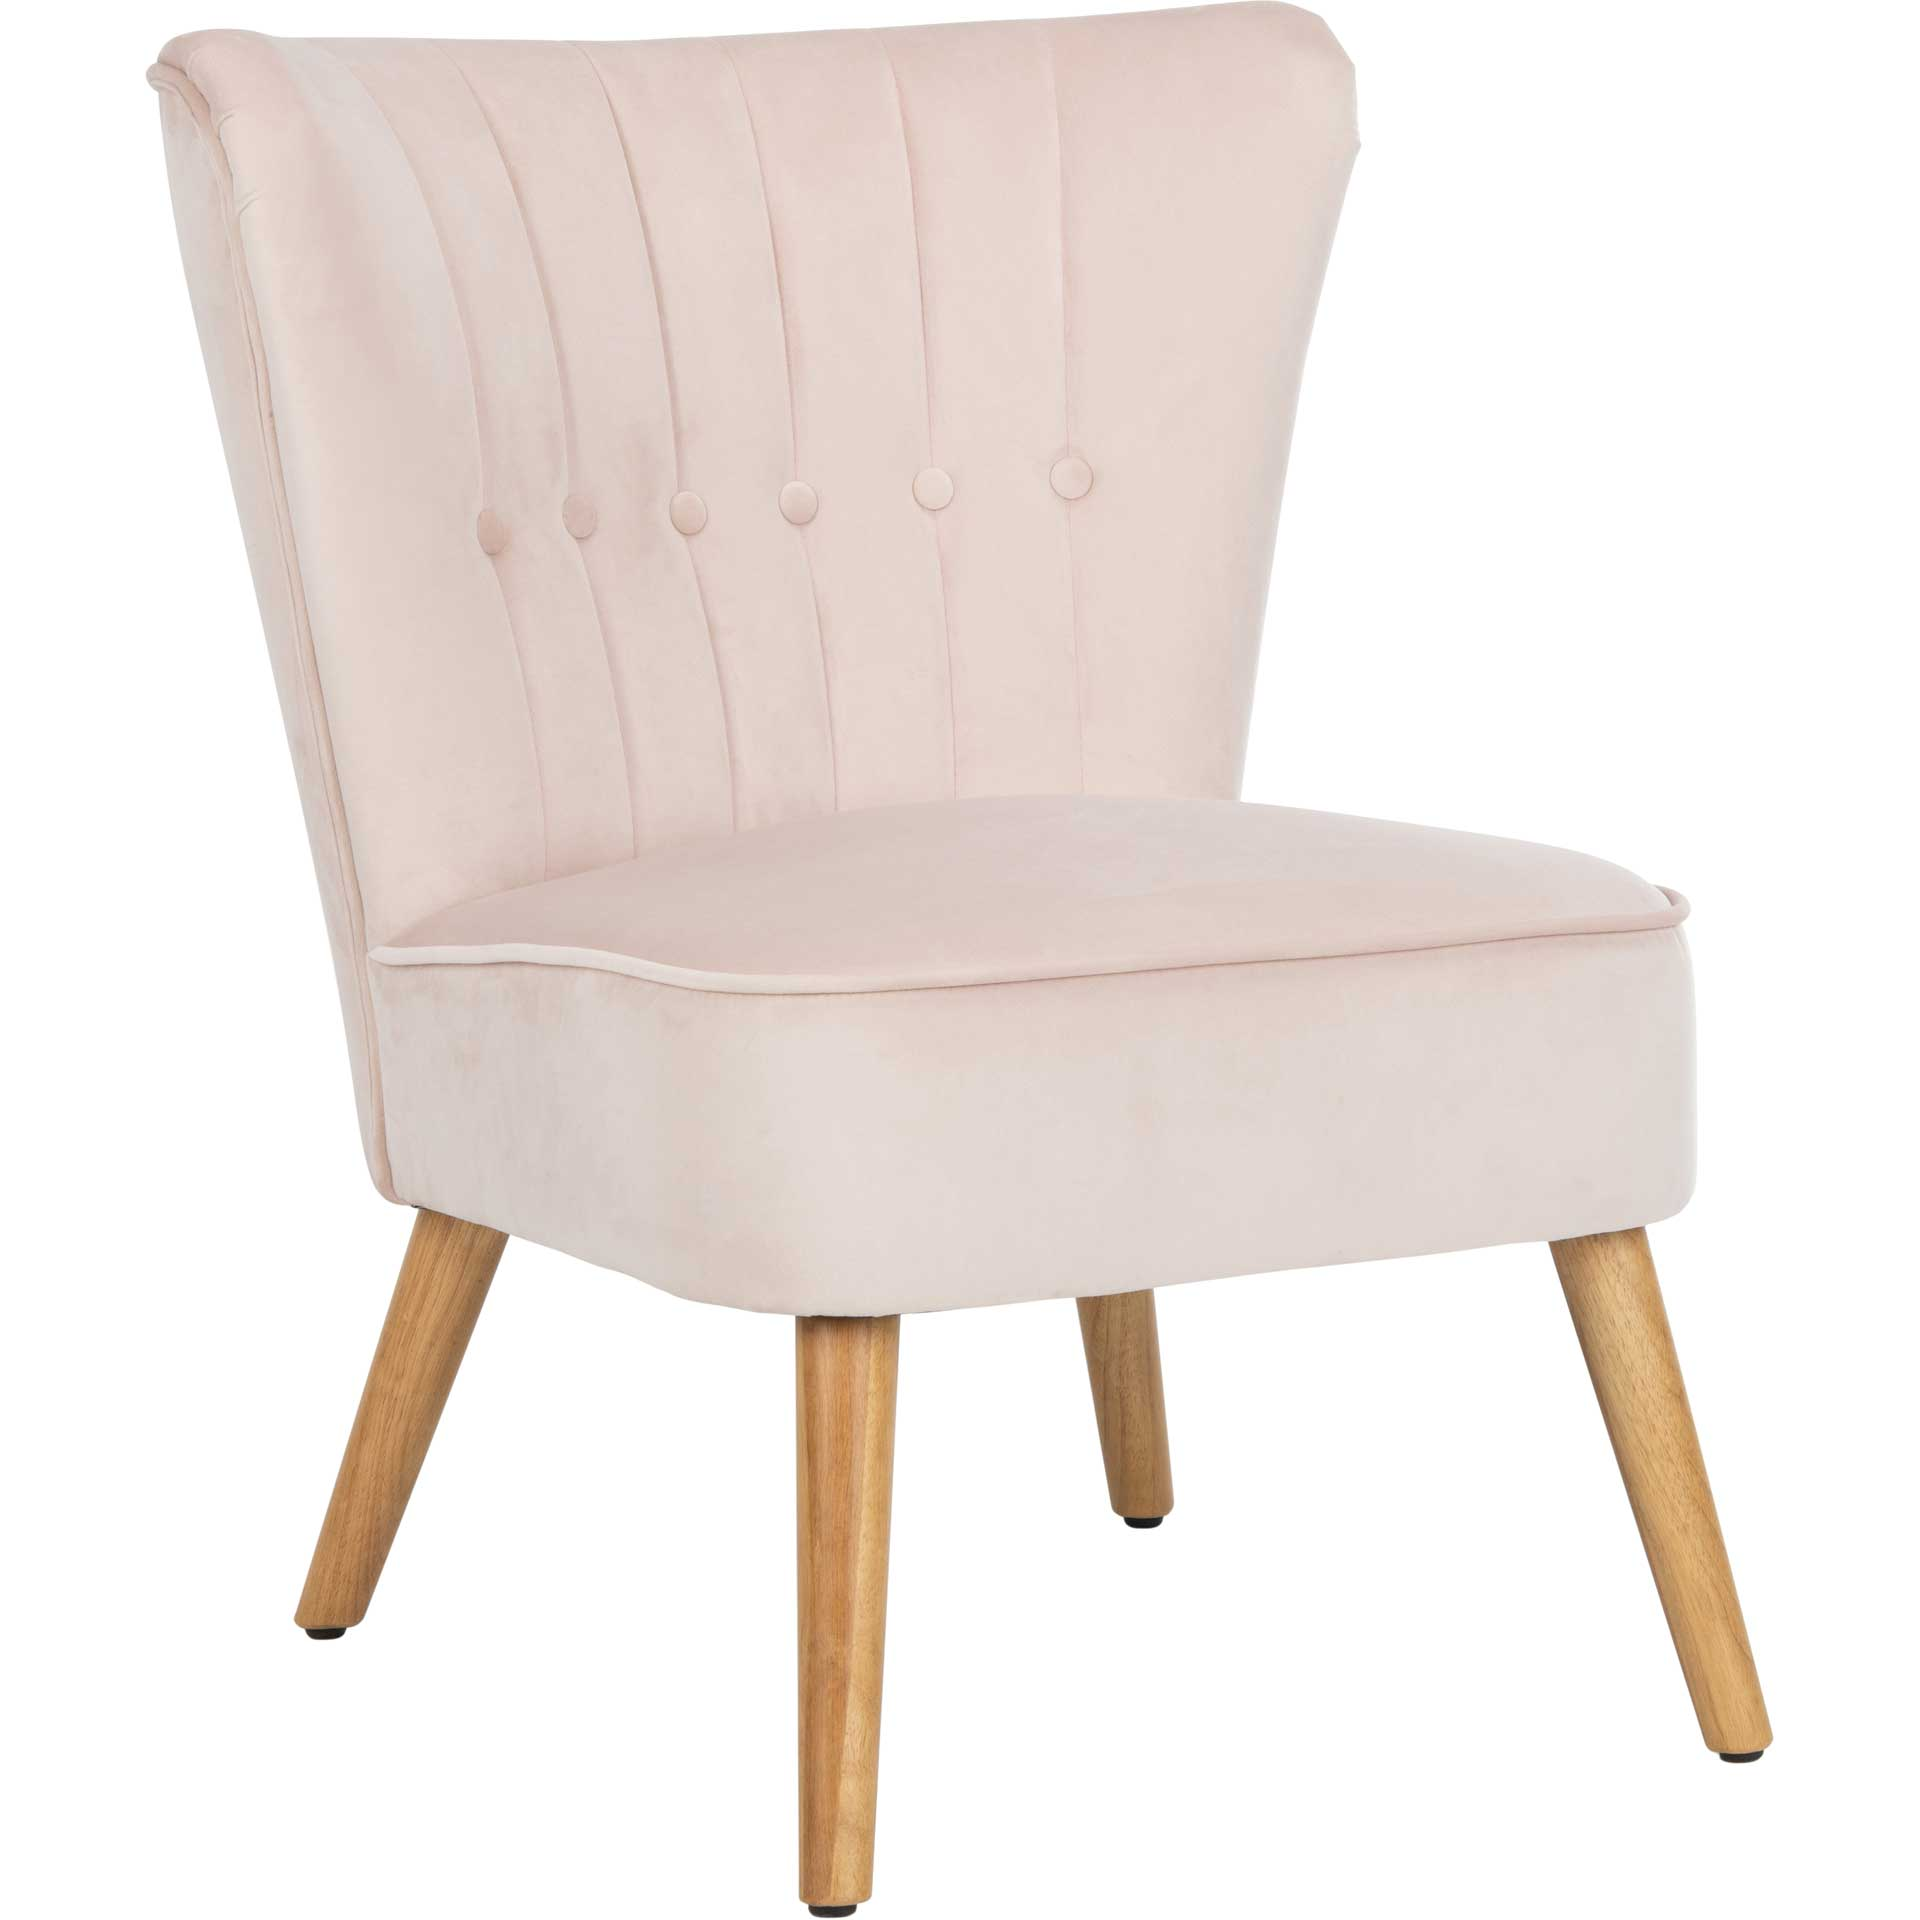 Juliet Mid Century Accent Chair Pale Pink/Natural